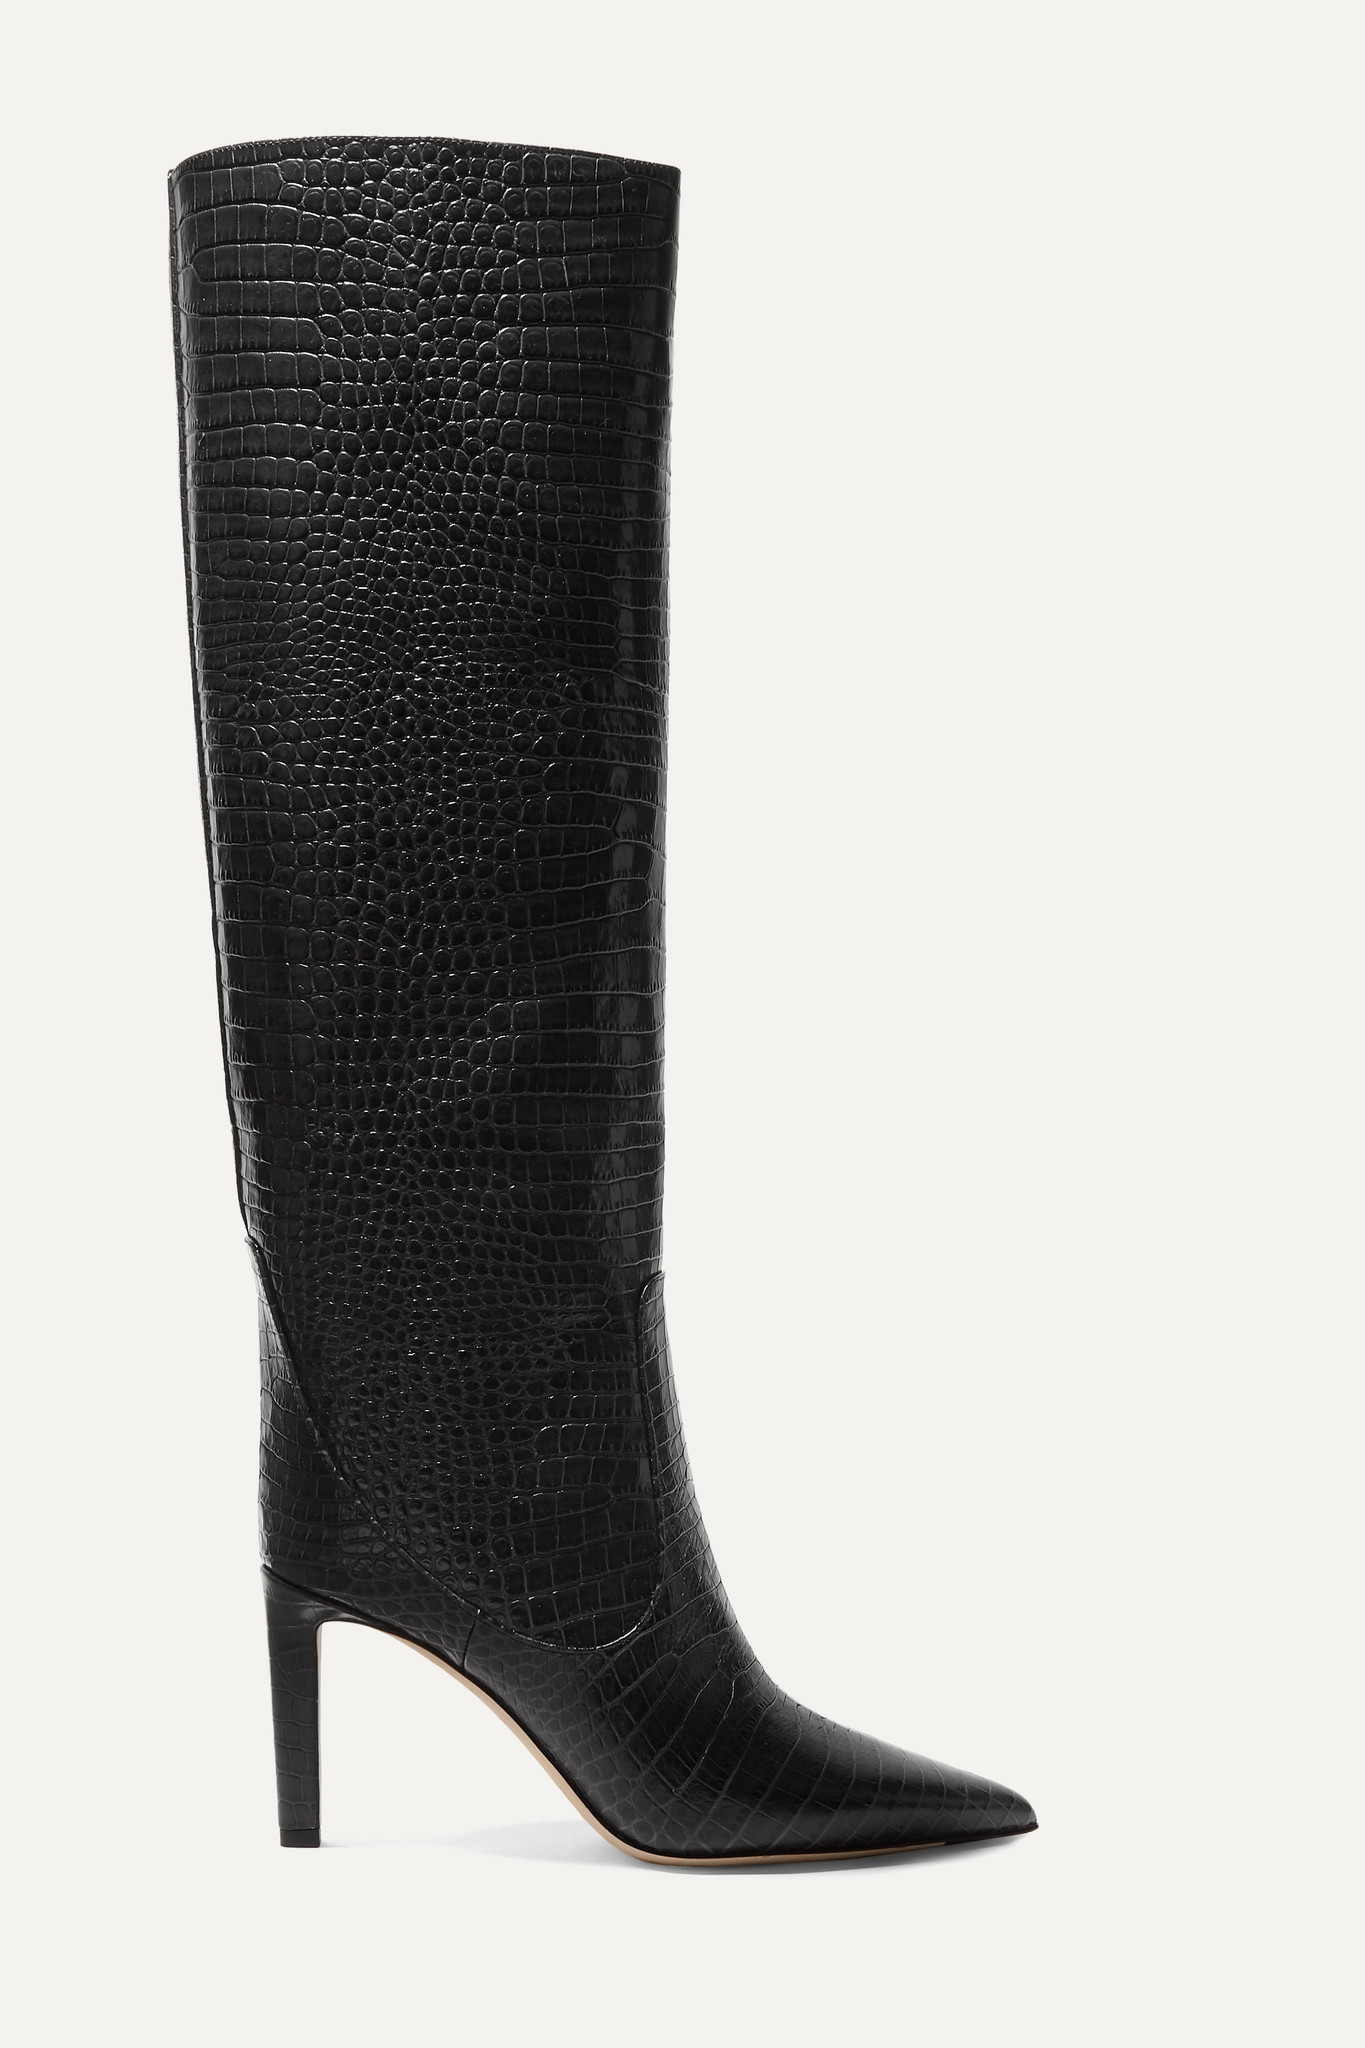 JIMMY CHOO - Mavis 85 Croc-effect Leather Knee Boots - Black - IT37.5